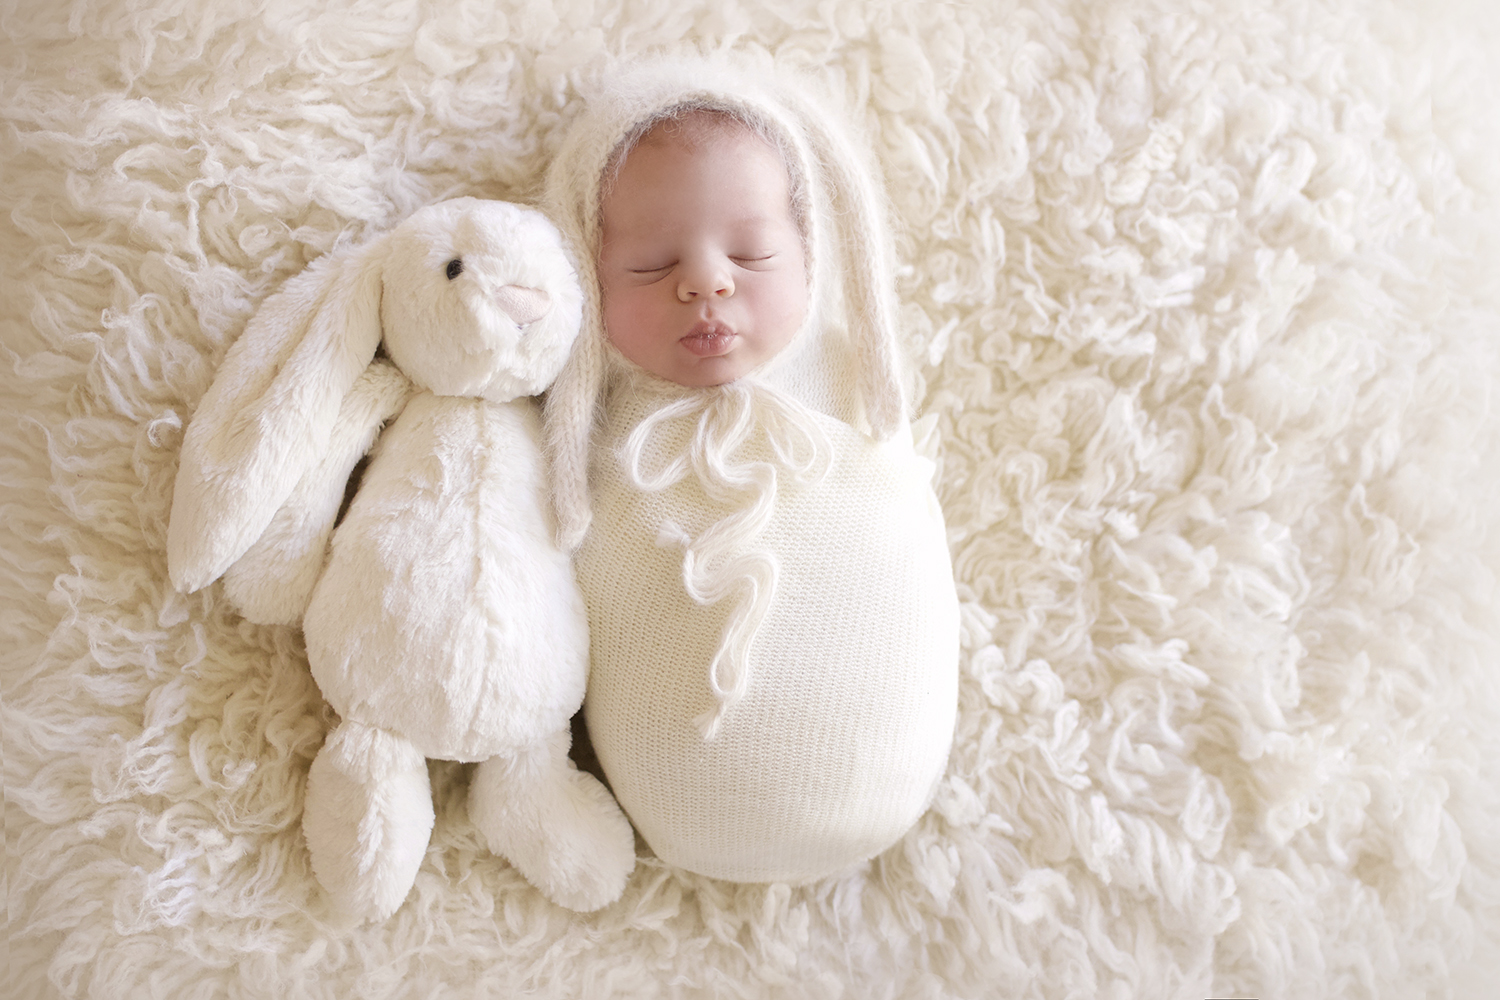 Newborn baby boy sleeping on cream fur wrapped in cream blanket with cream knit bunny bonnet and cream soft bunny toy